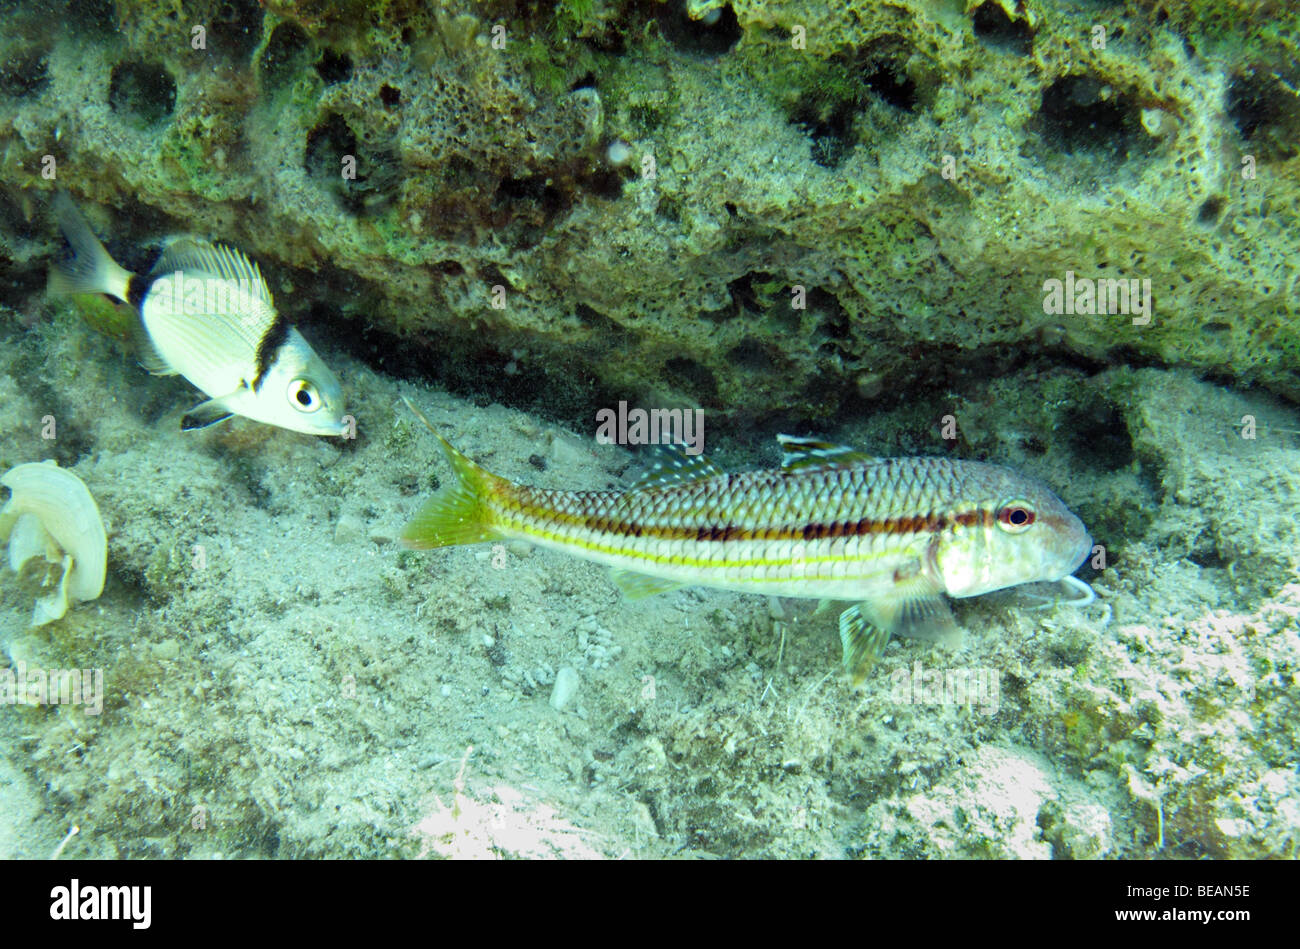 Red mullet, Mullus barbatus and Common two-banded seabream fish symbiosis - Stock Image